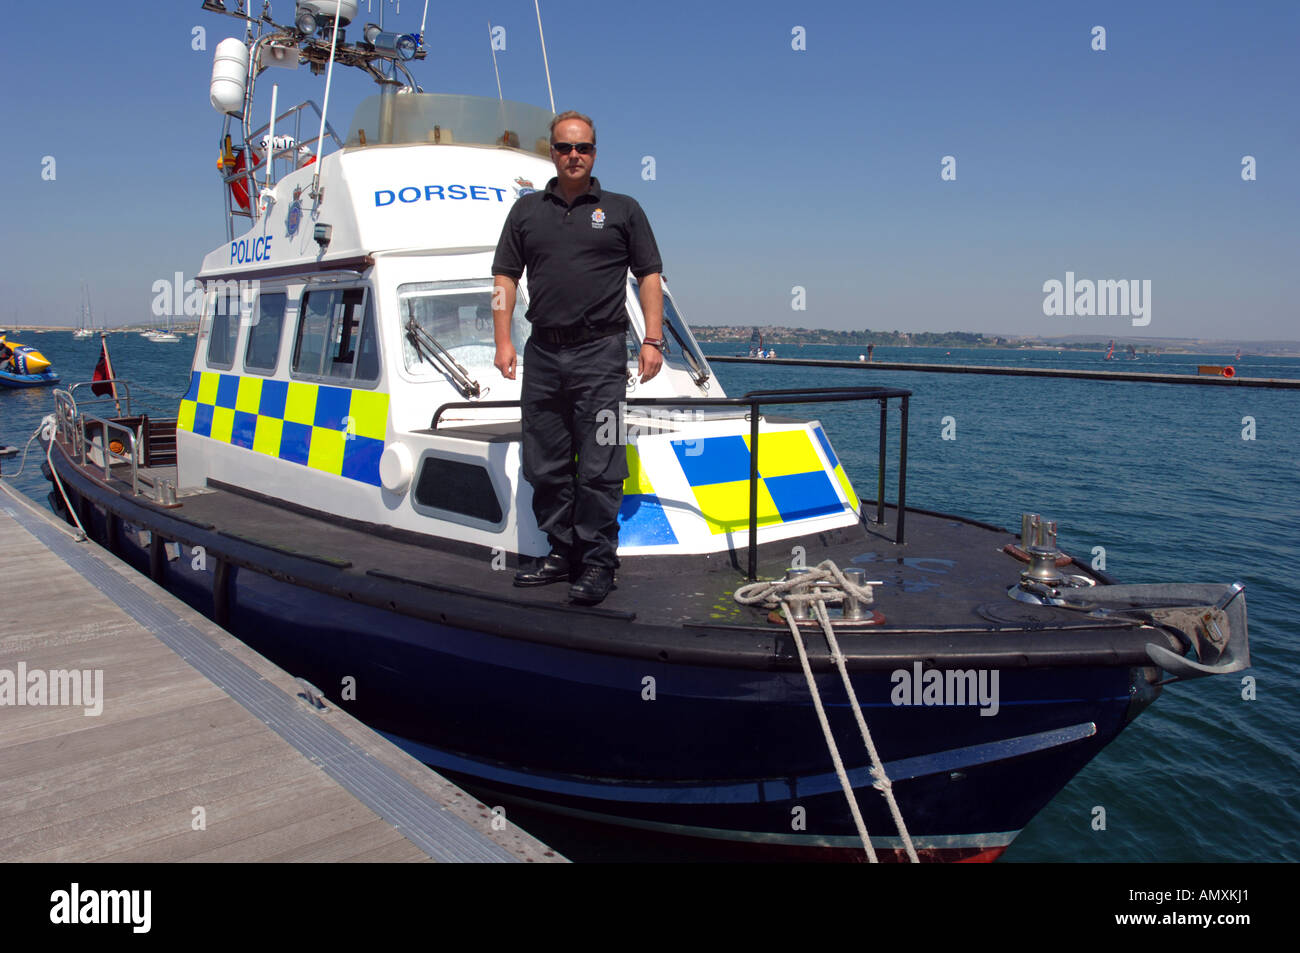 Police boat and officer, Dorset, Britain UK Stock Photo